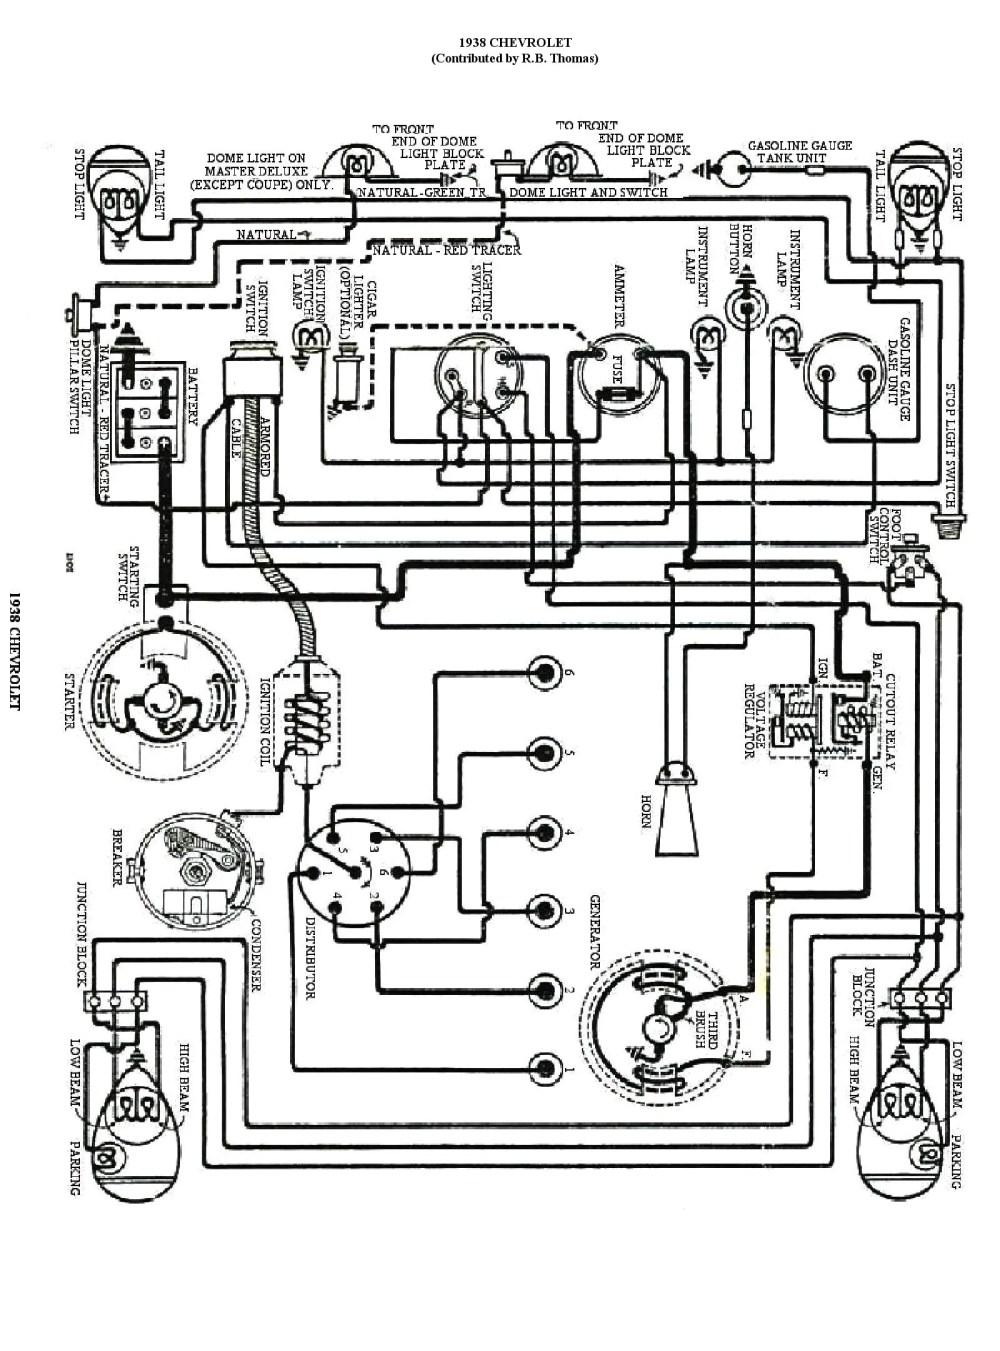 medium resolution of chevy wiring diagrams wiring 1938 1938 car wiring 1939 1939 car wiring 1939 truck wiring